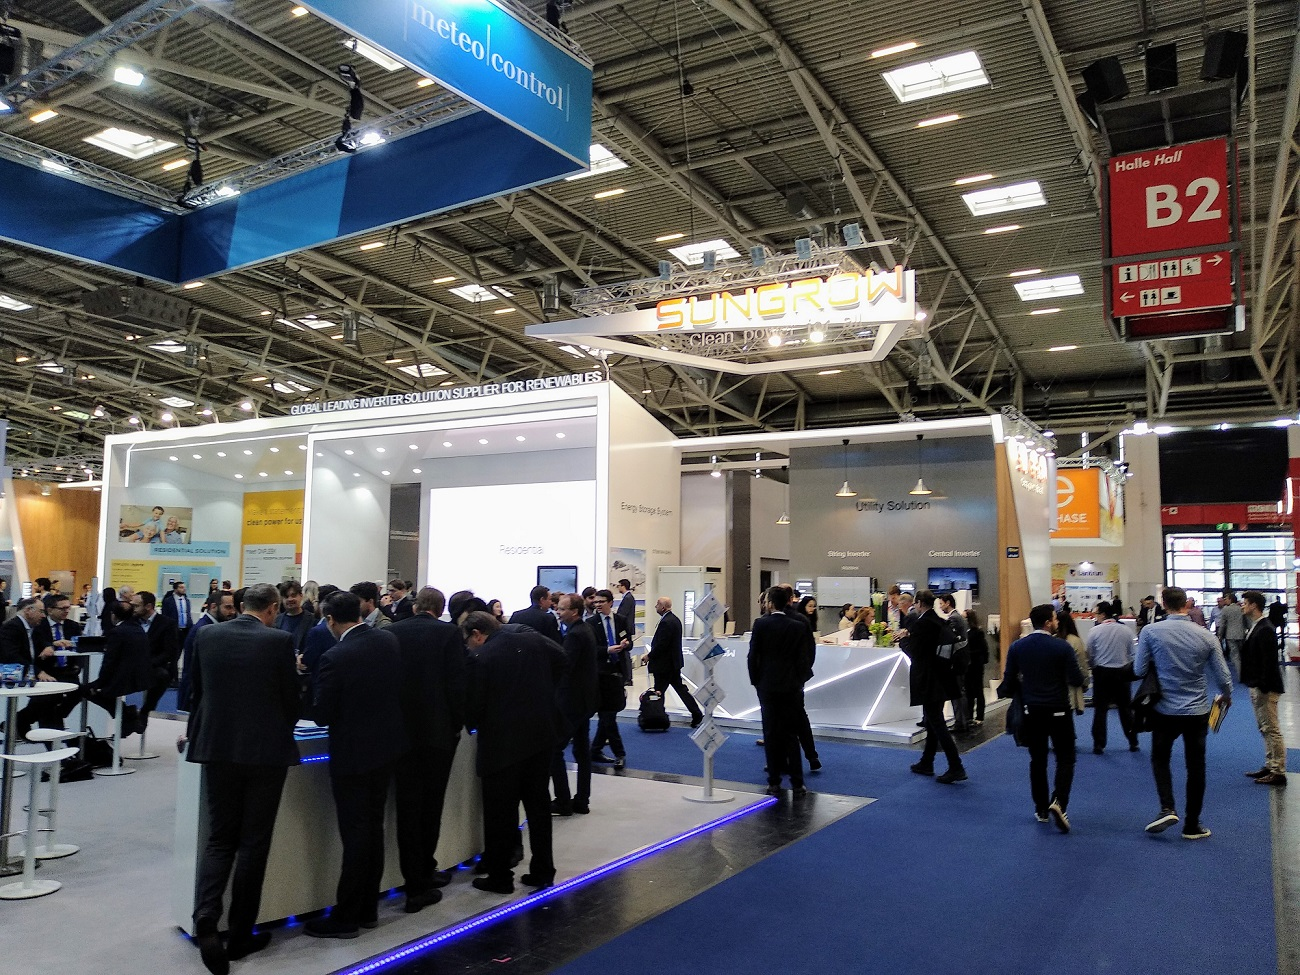 A free-market era will bring growth but not certainty of subsidies, Intersolar speakers pointed out (Credit: PV Tech)